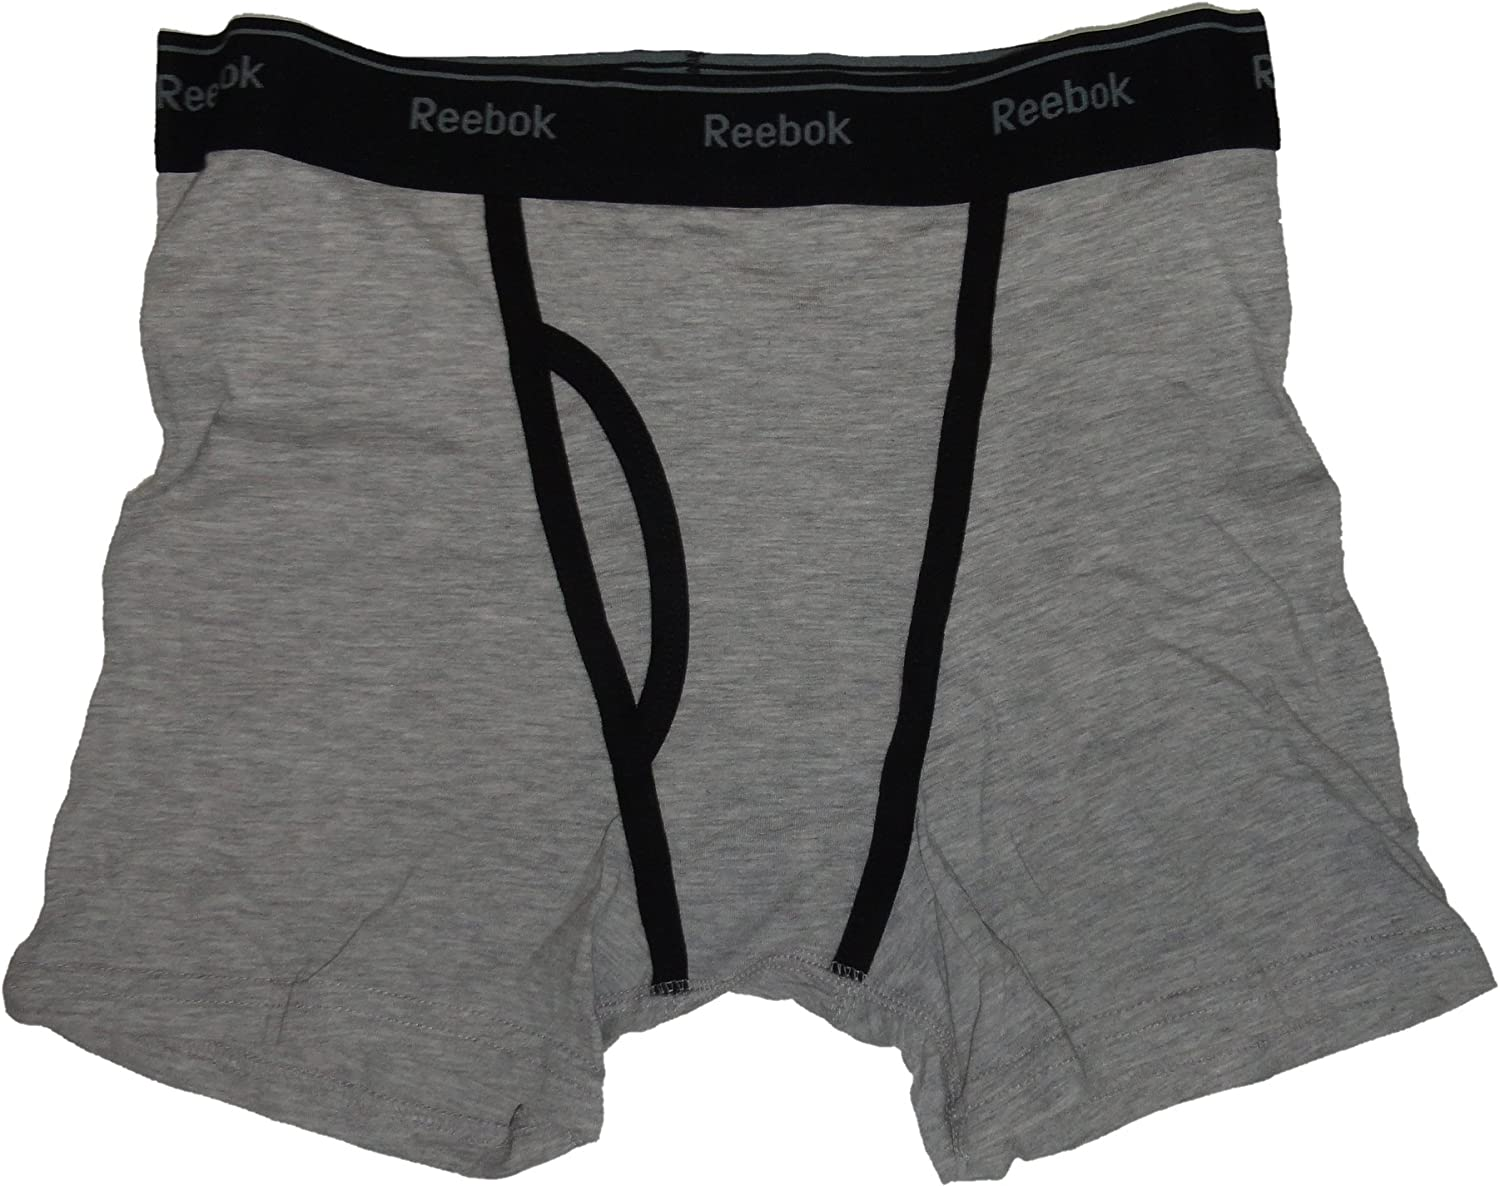 Reebok Men's Stretch Boxer Briefs, Size Small 28/30, Black/Grey, (Pack of 2)